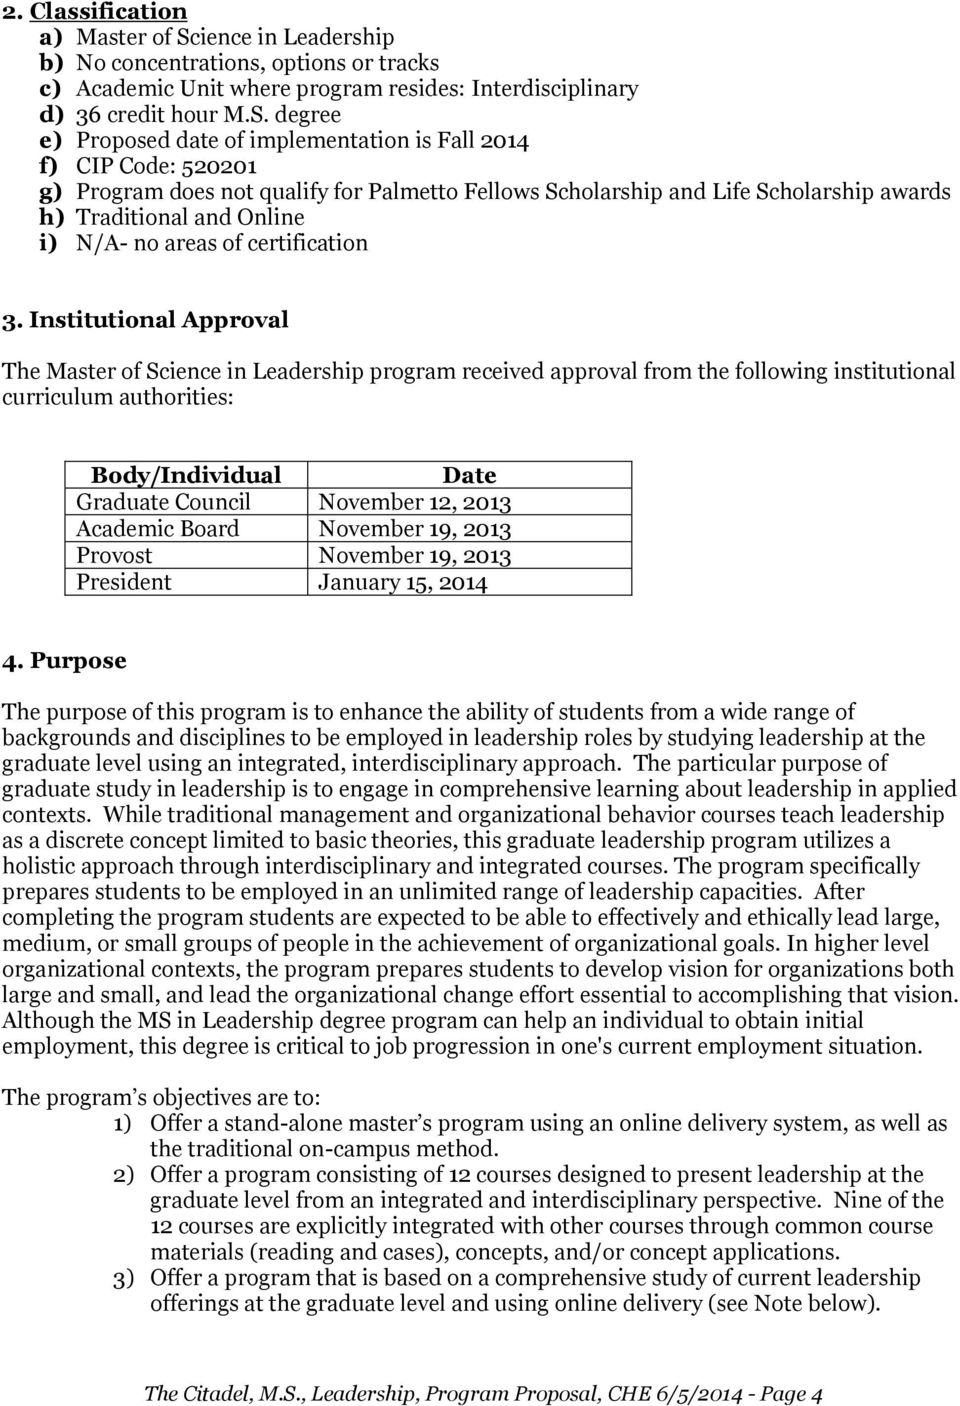 degree e) Proposed date of implementation is Fall 2014 f) CIP Code: 520201 g) Program does not qualify for Palmetto Fellows Scholarship and Life Scholarship awards h) Traditional and Online i) N/A-